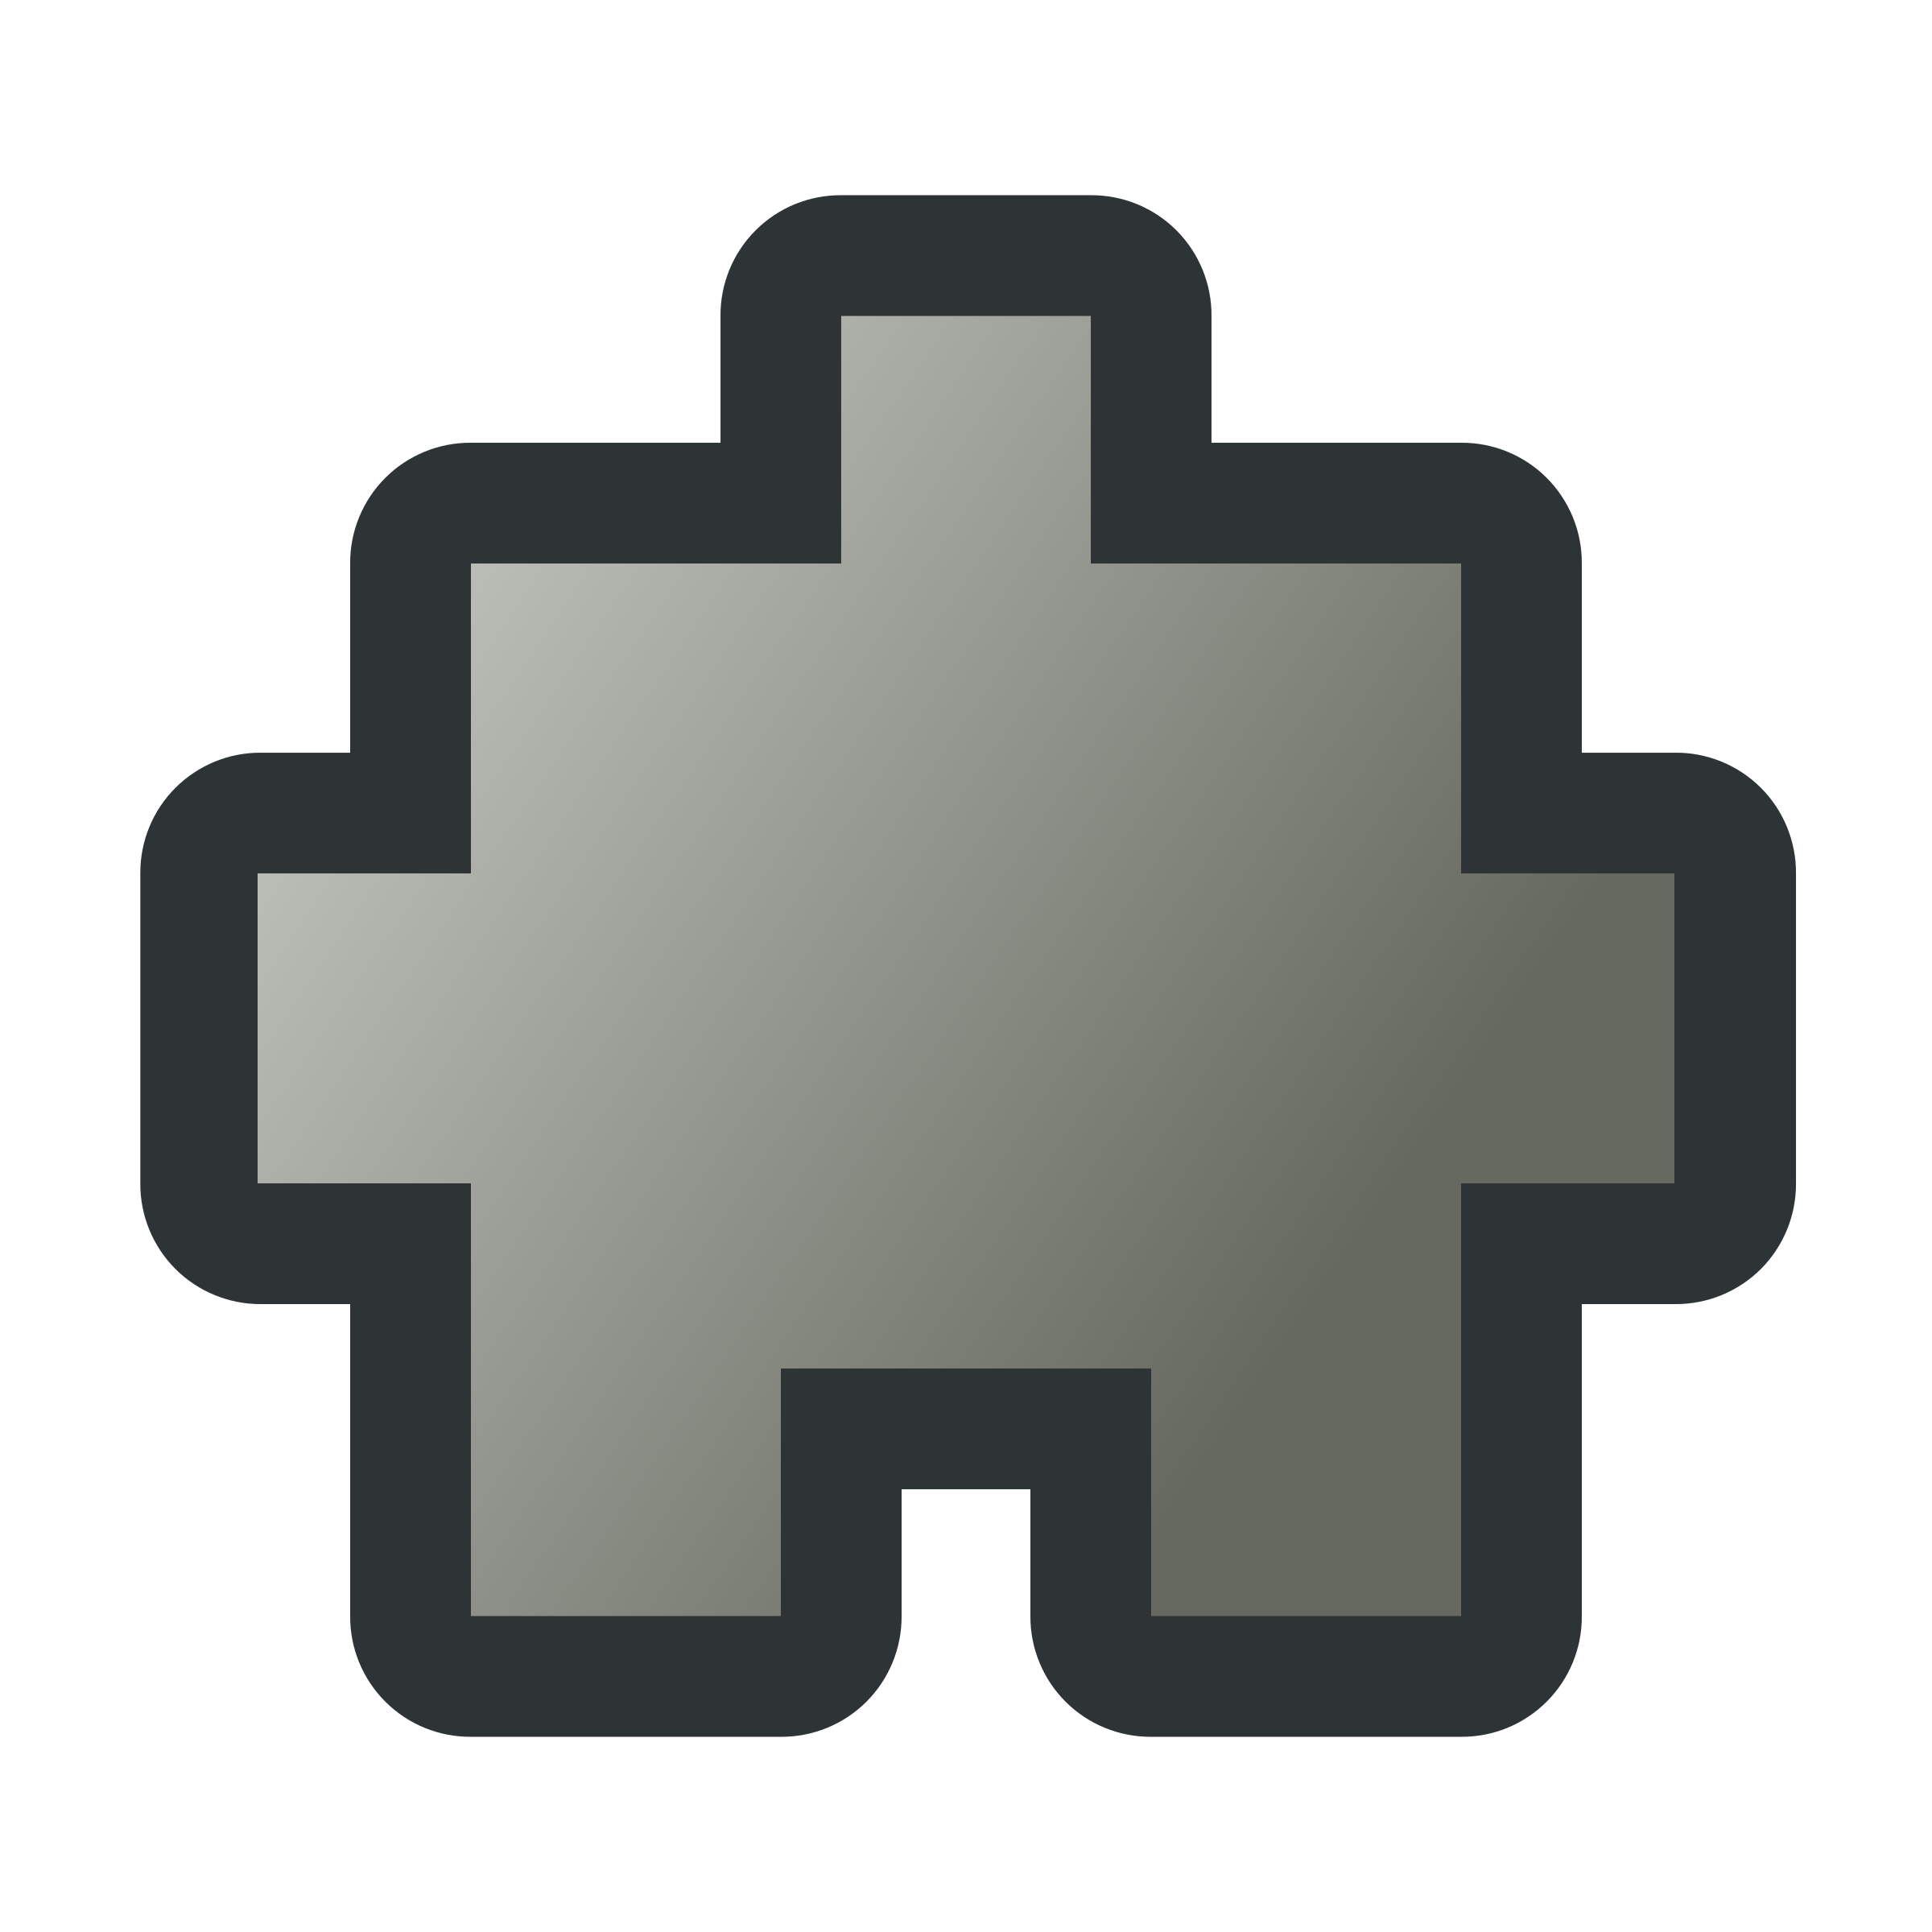 icon_puzzle2_grey by jean_victor_balin